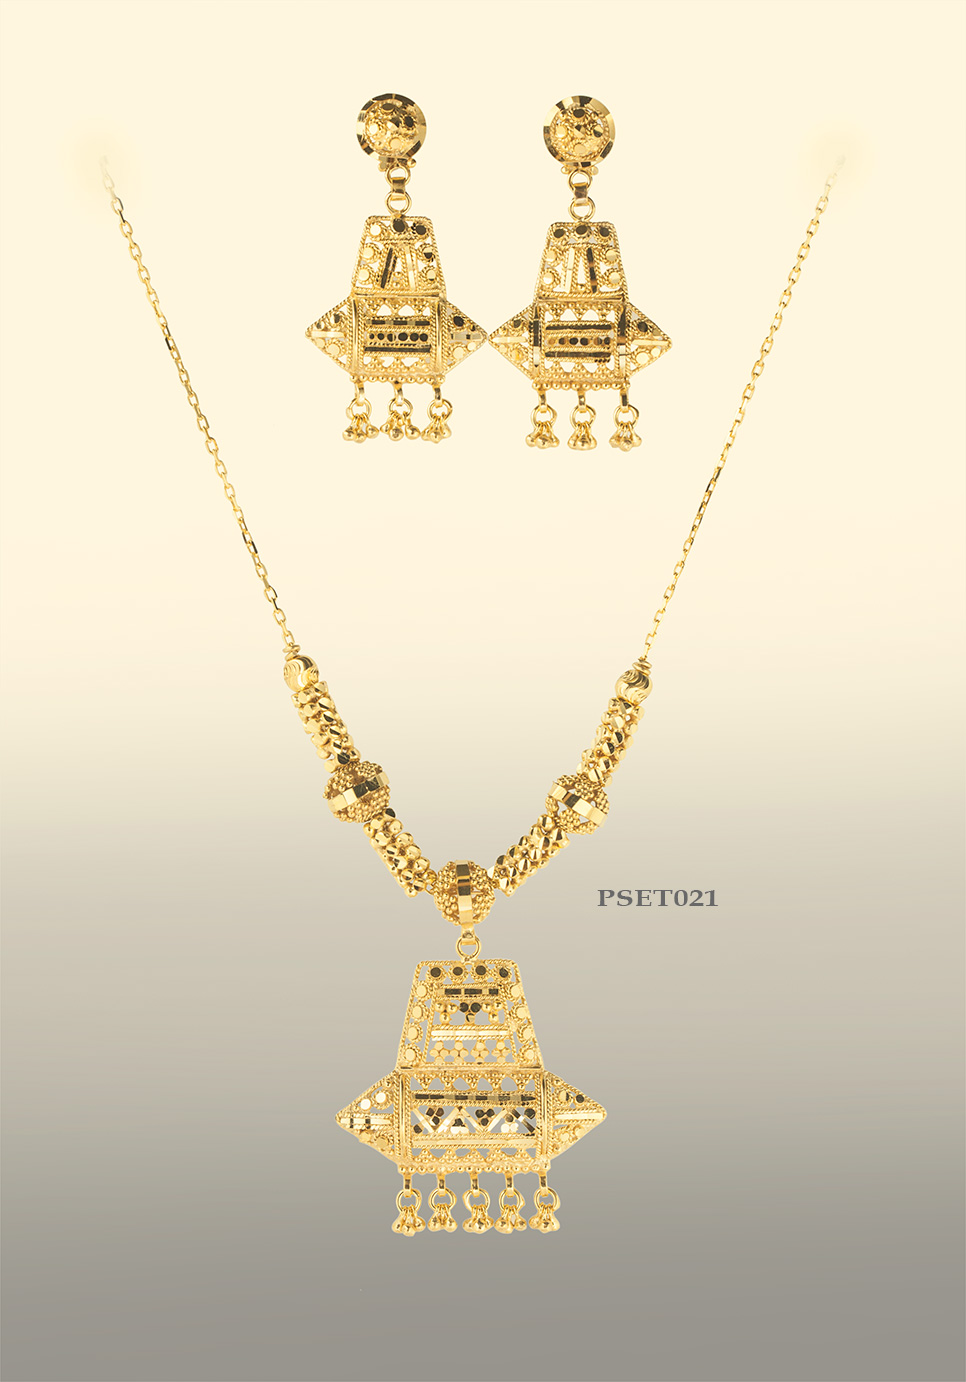 stone circle pendant earring copy gold palace necklace measurements set sibias product jewellery sibia sibiapalace multicolour